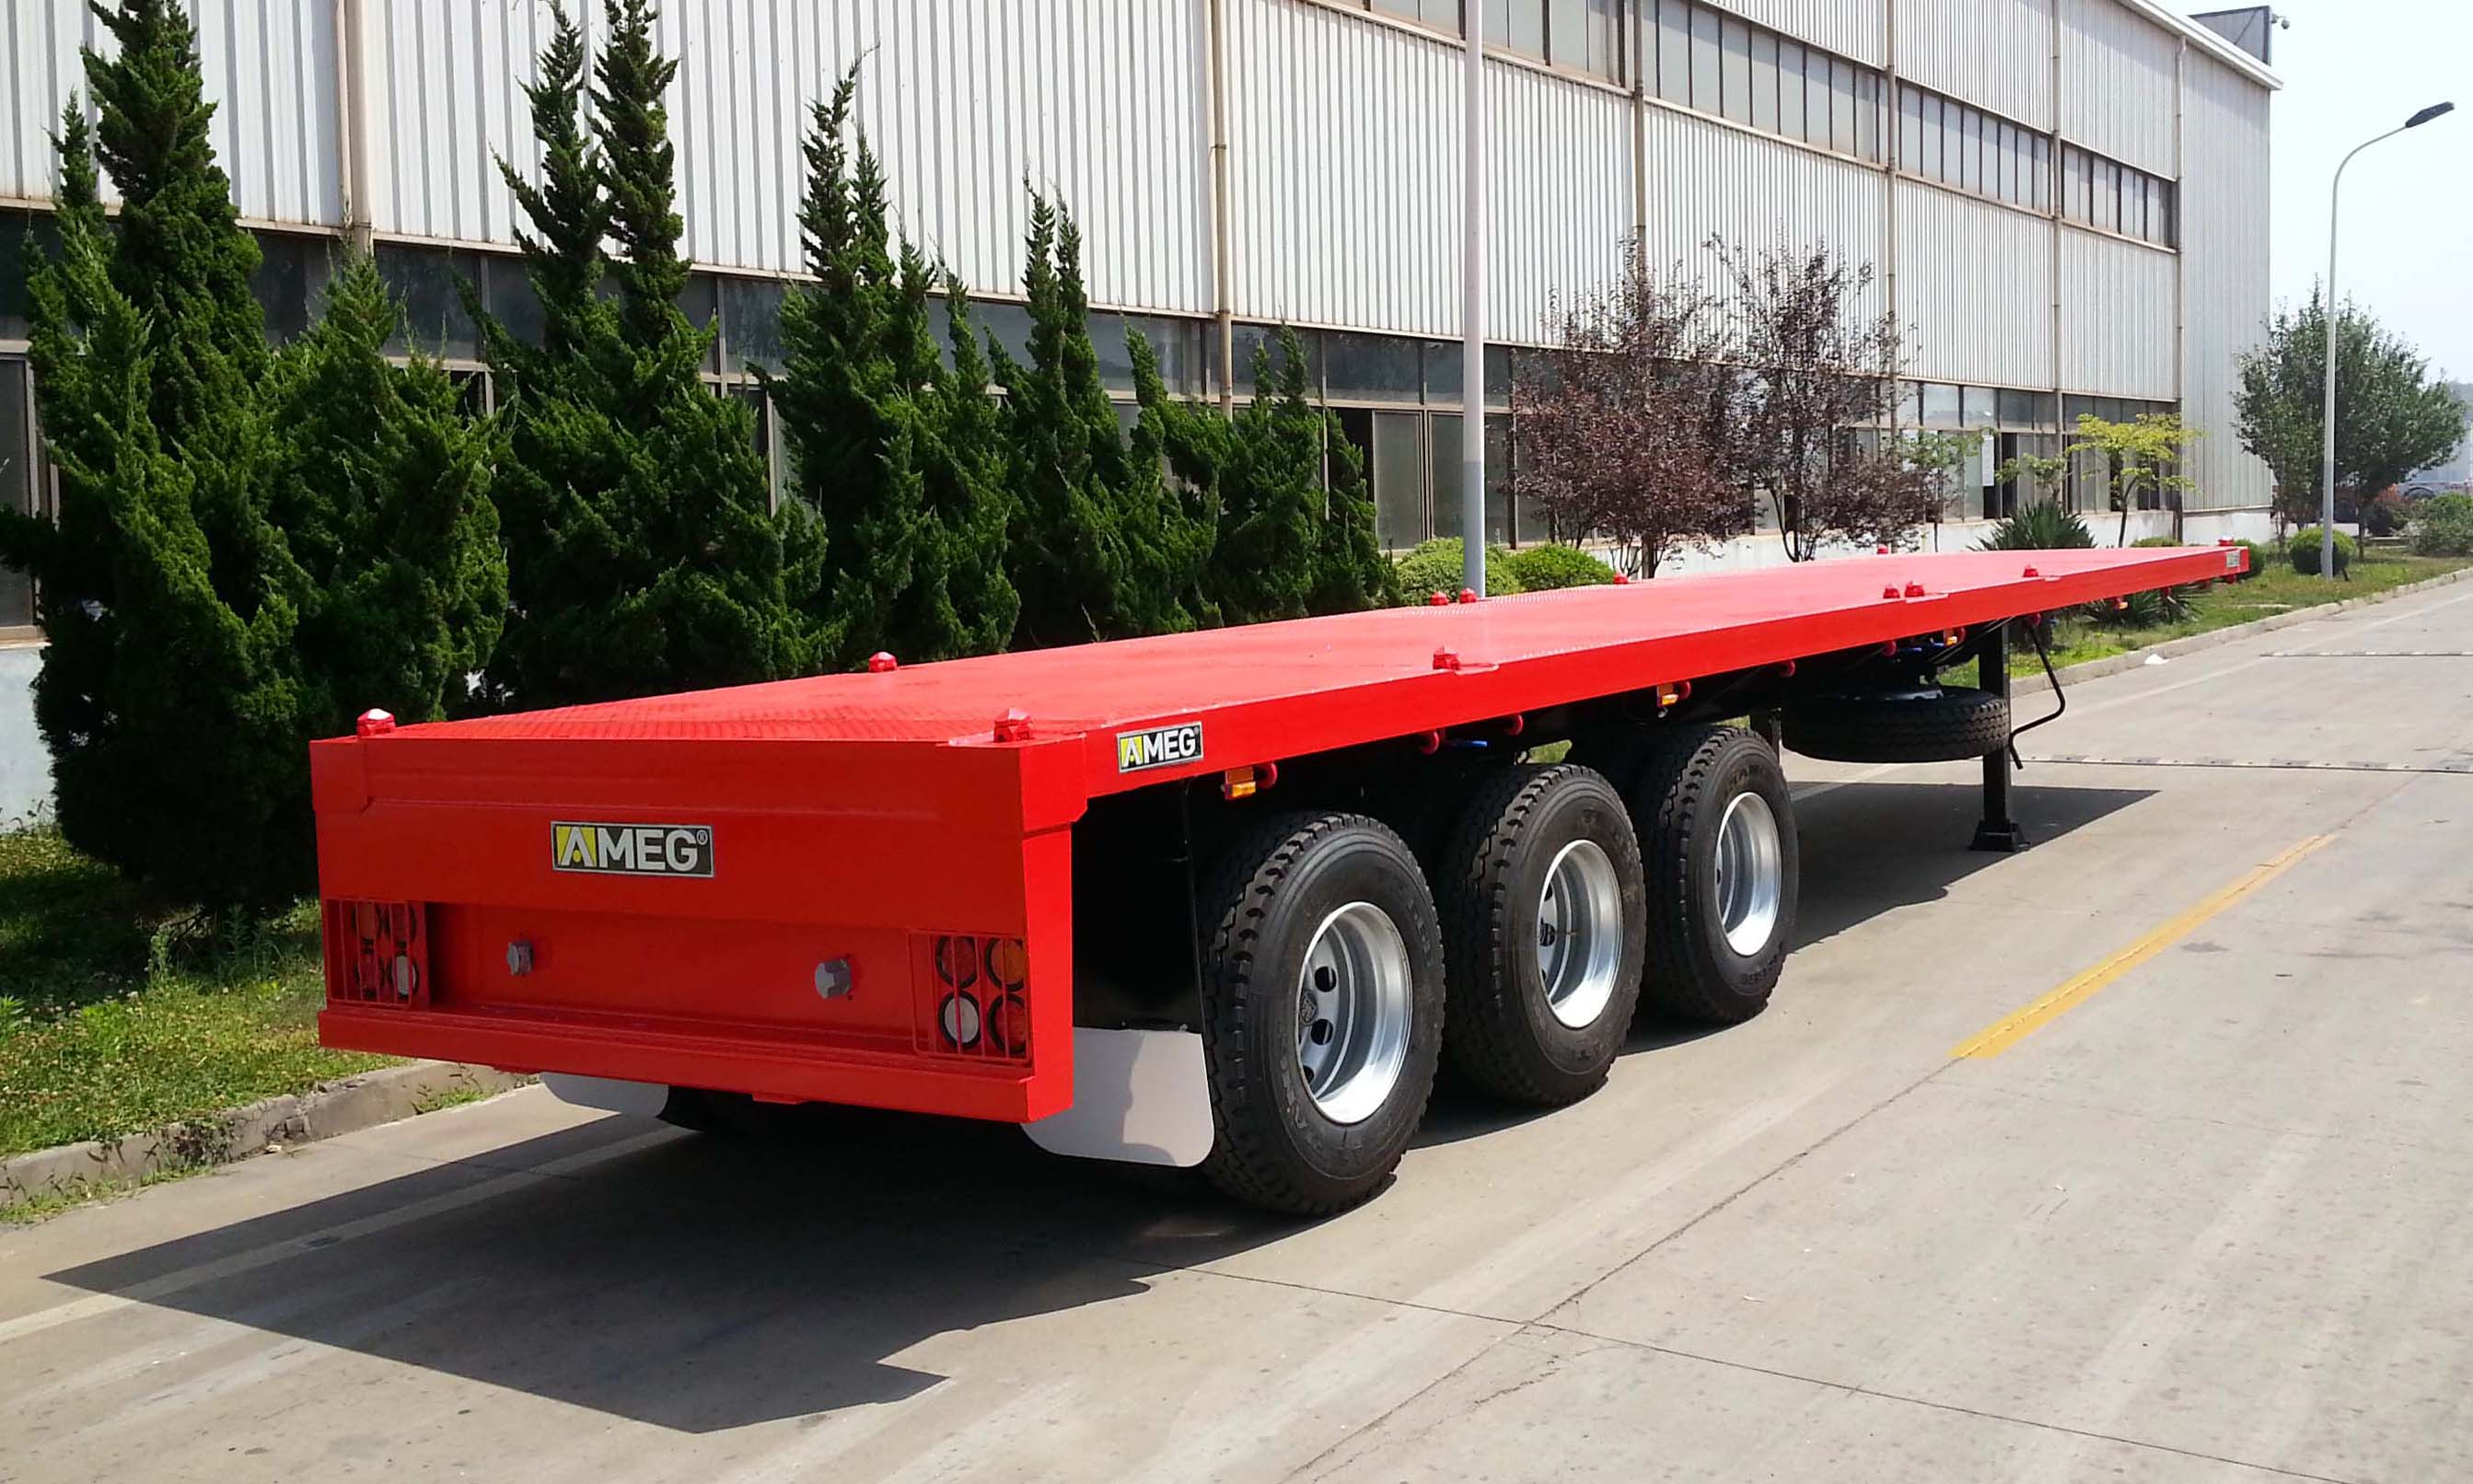 The most standard 40ft flatbed trailer with 3 axles